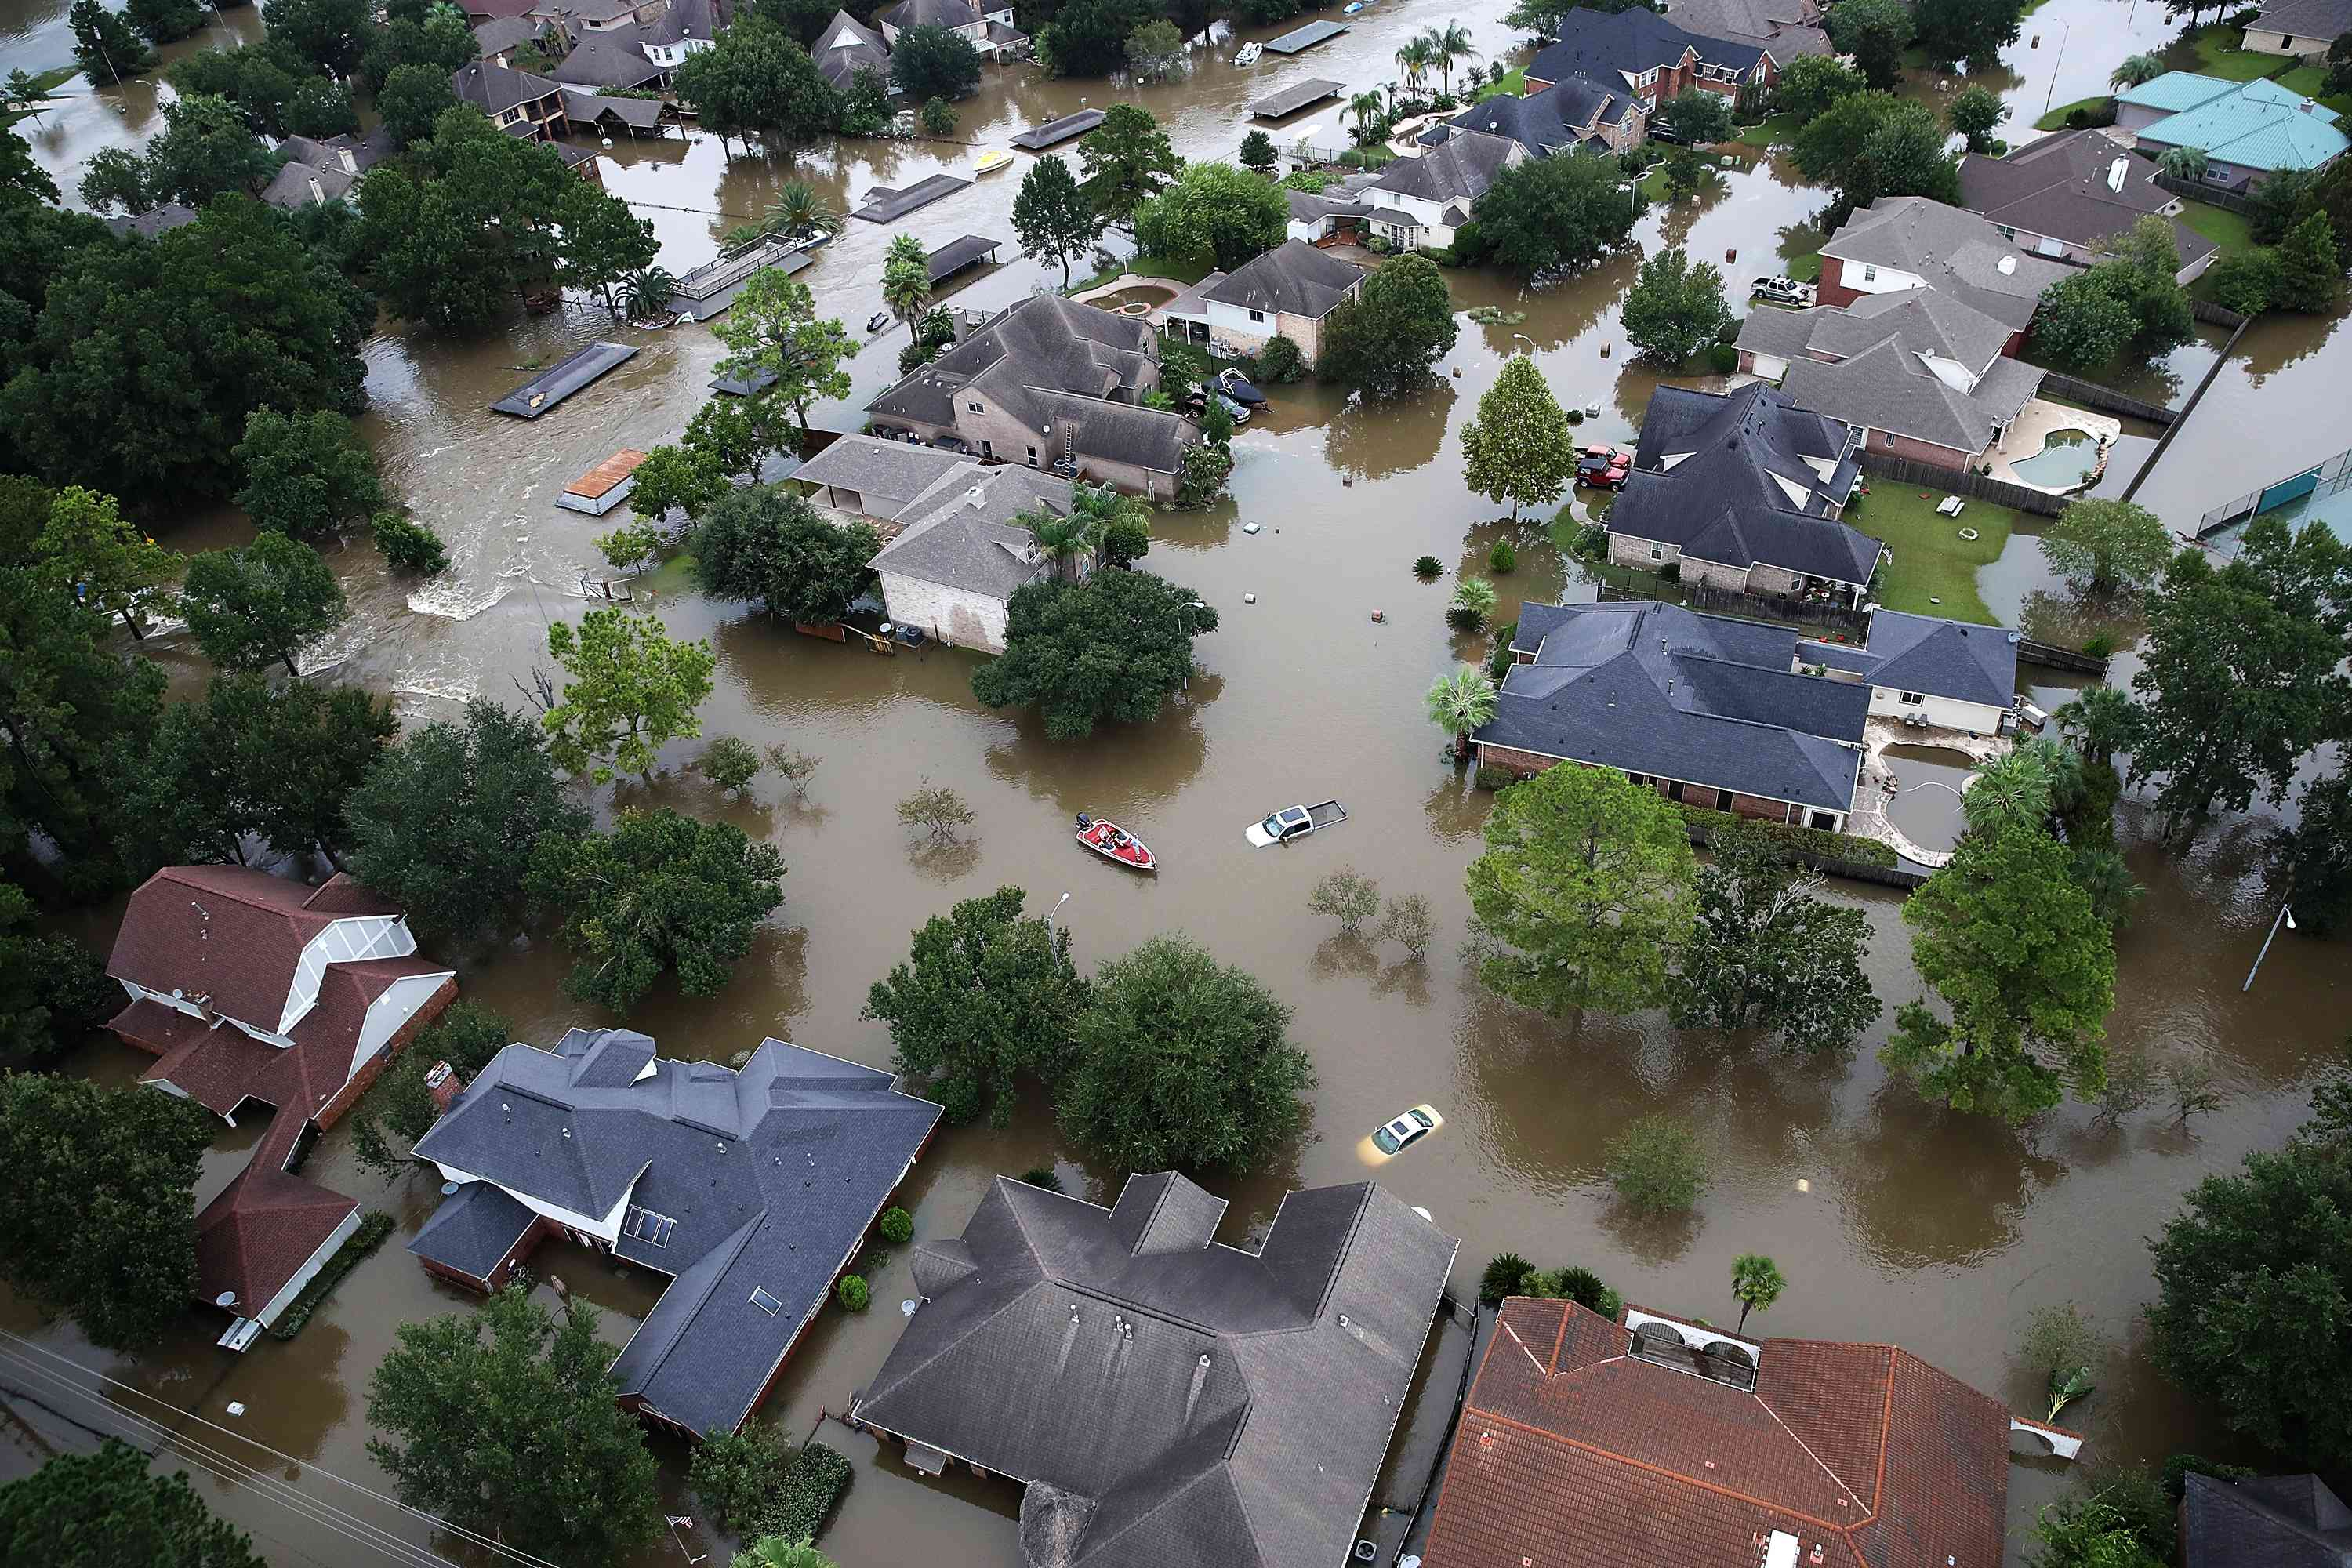 Aerial view of a flooded neighborhood in Houston, Texas after Hurricane Harvey